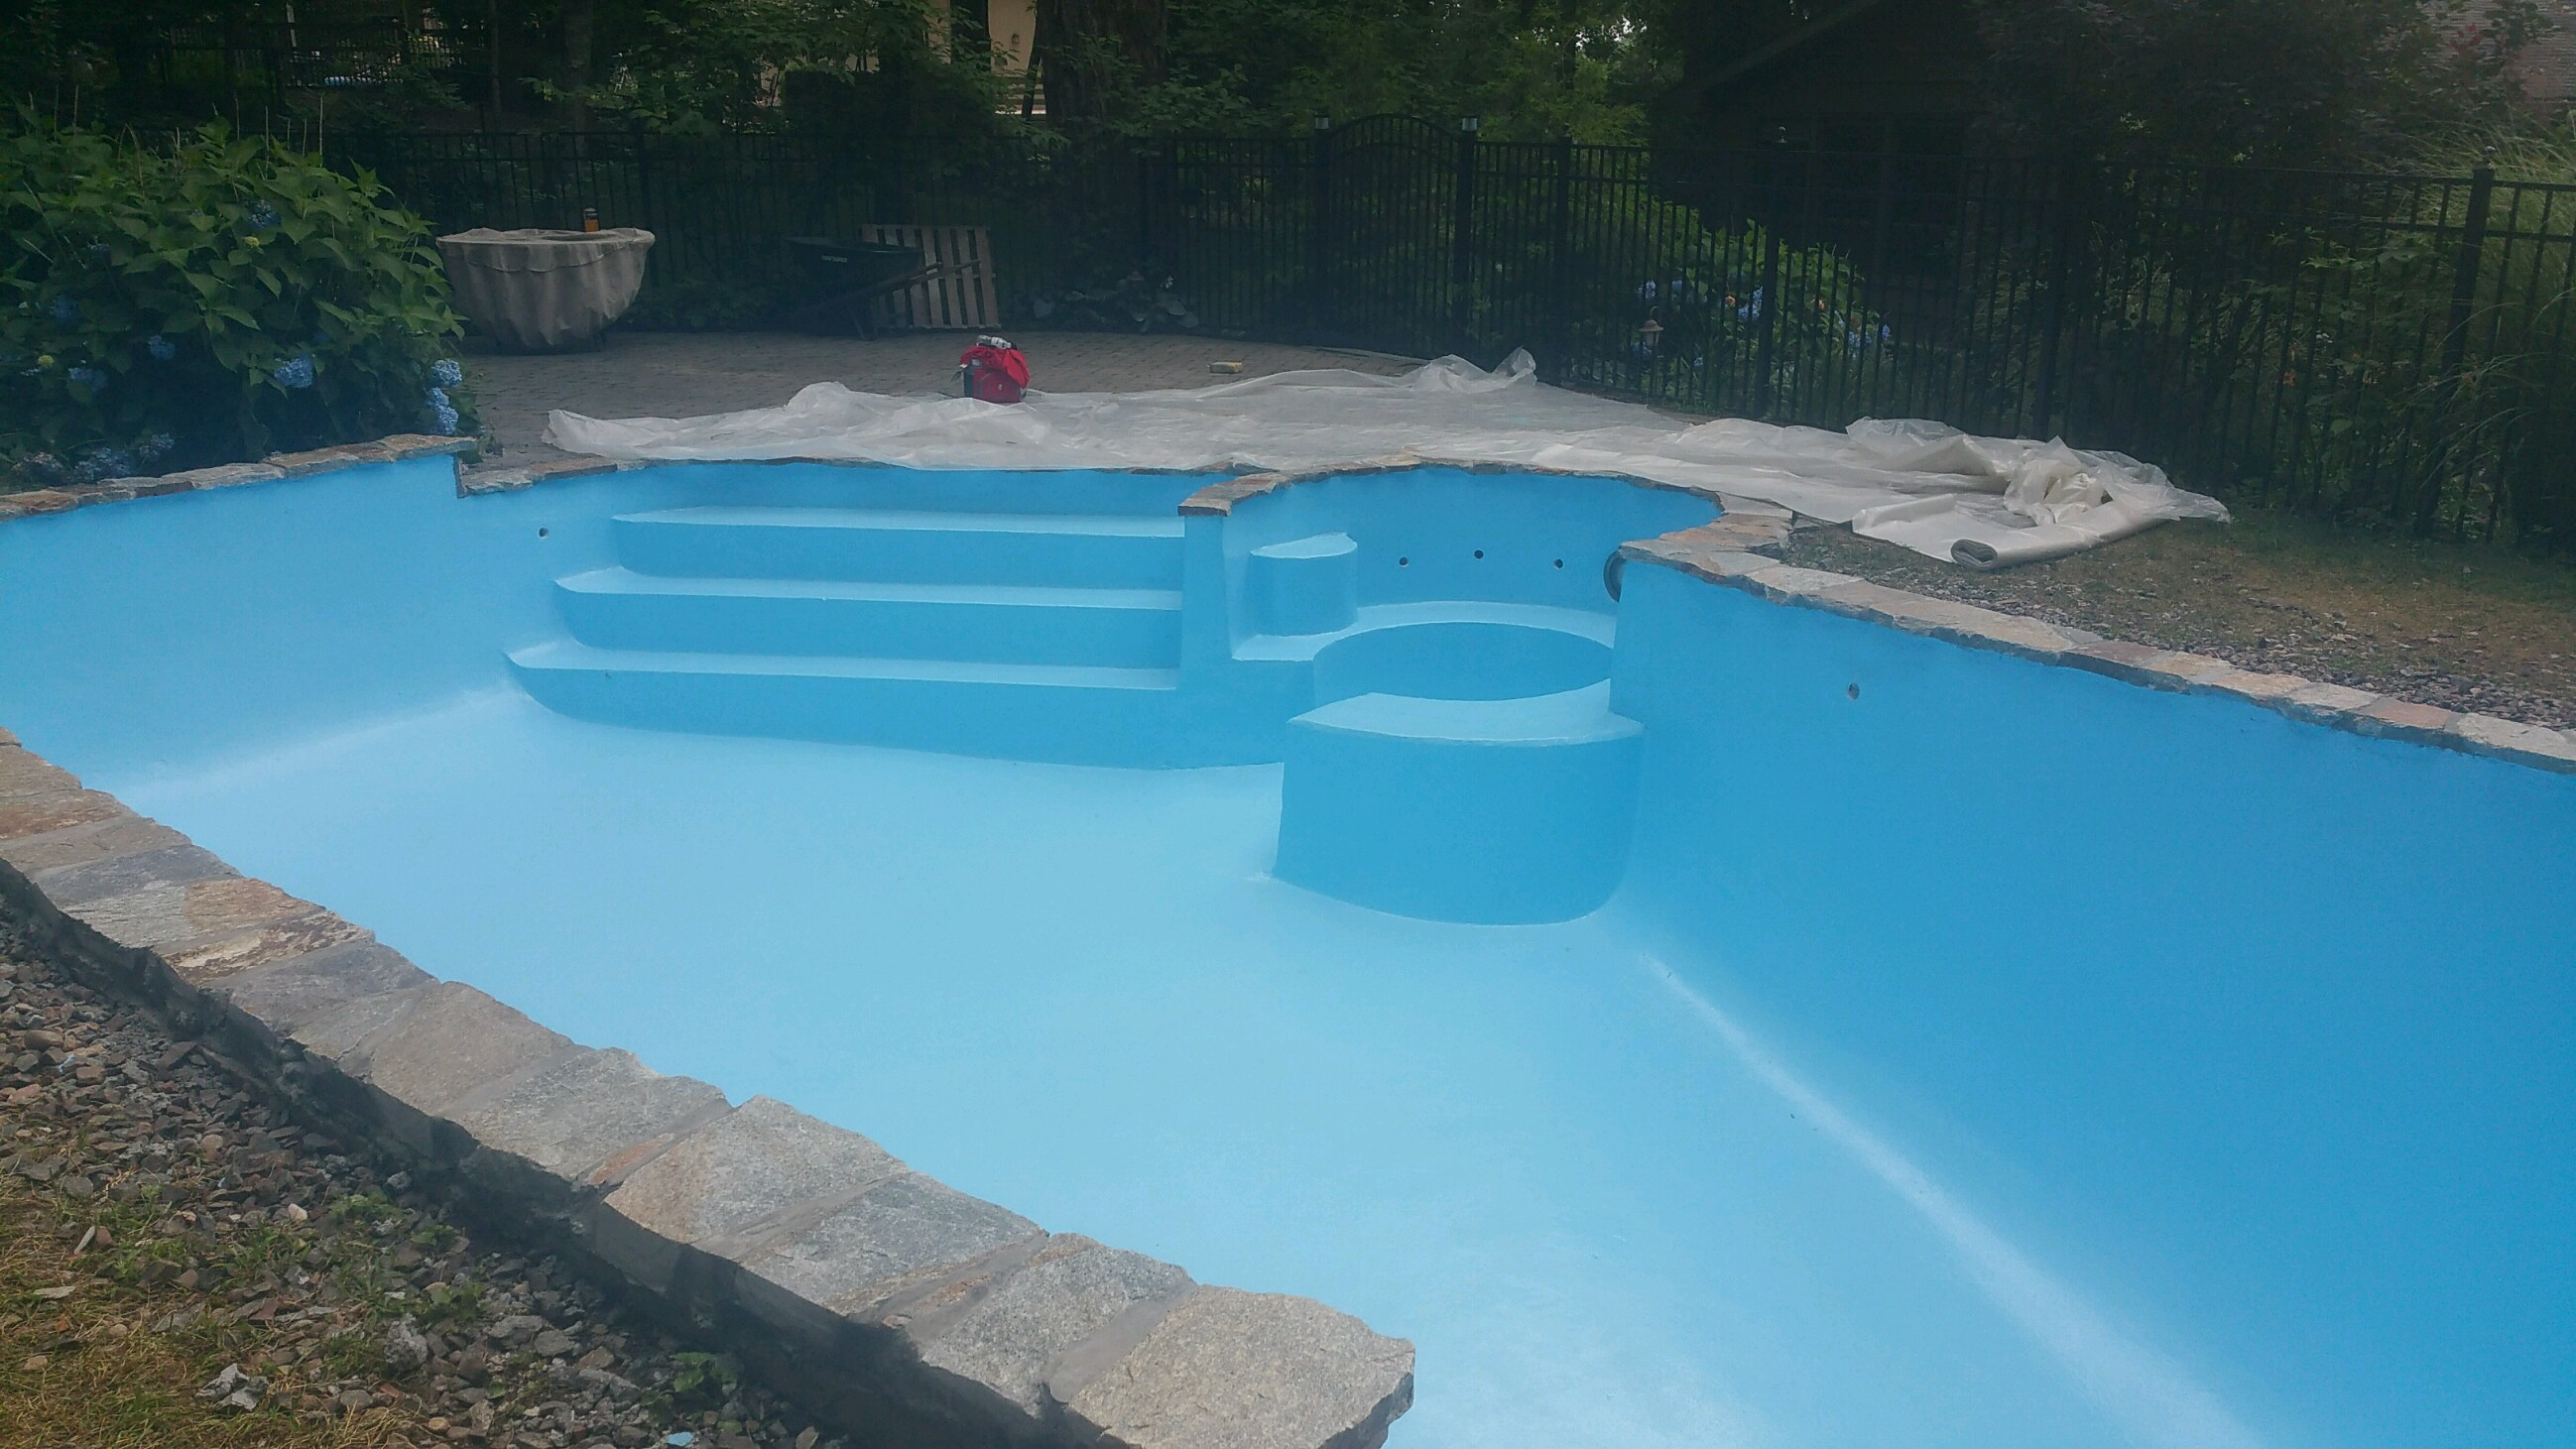 Pool remodeling renovation company ct rizzo pools for Pool remodeling